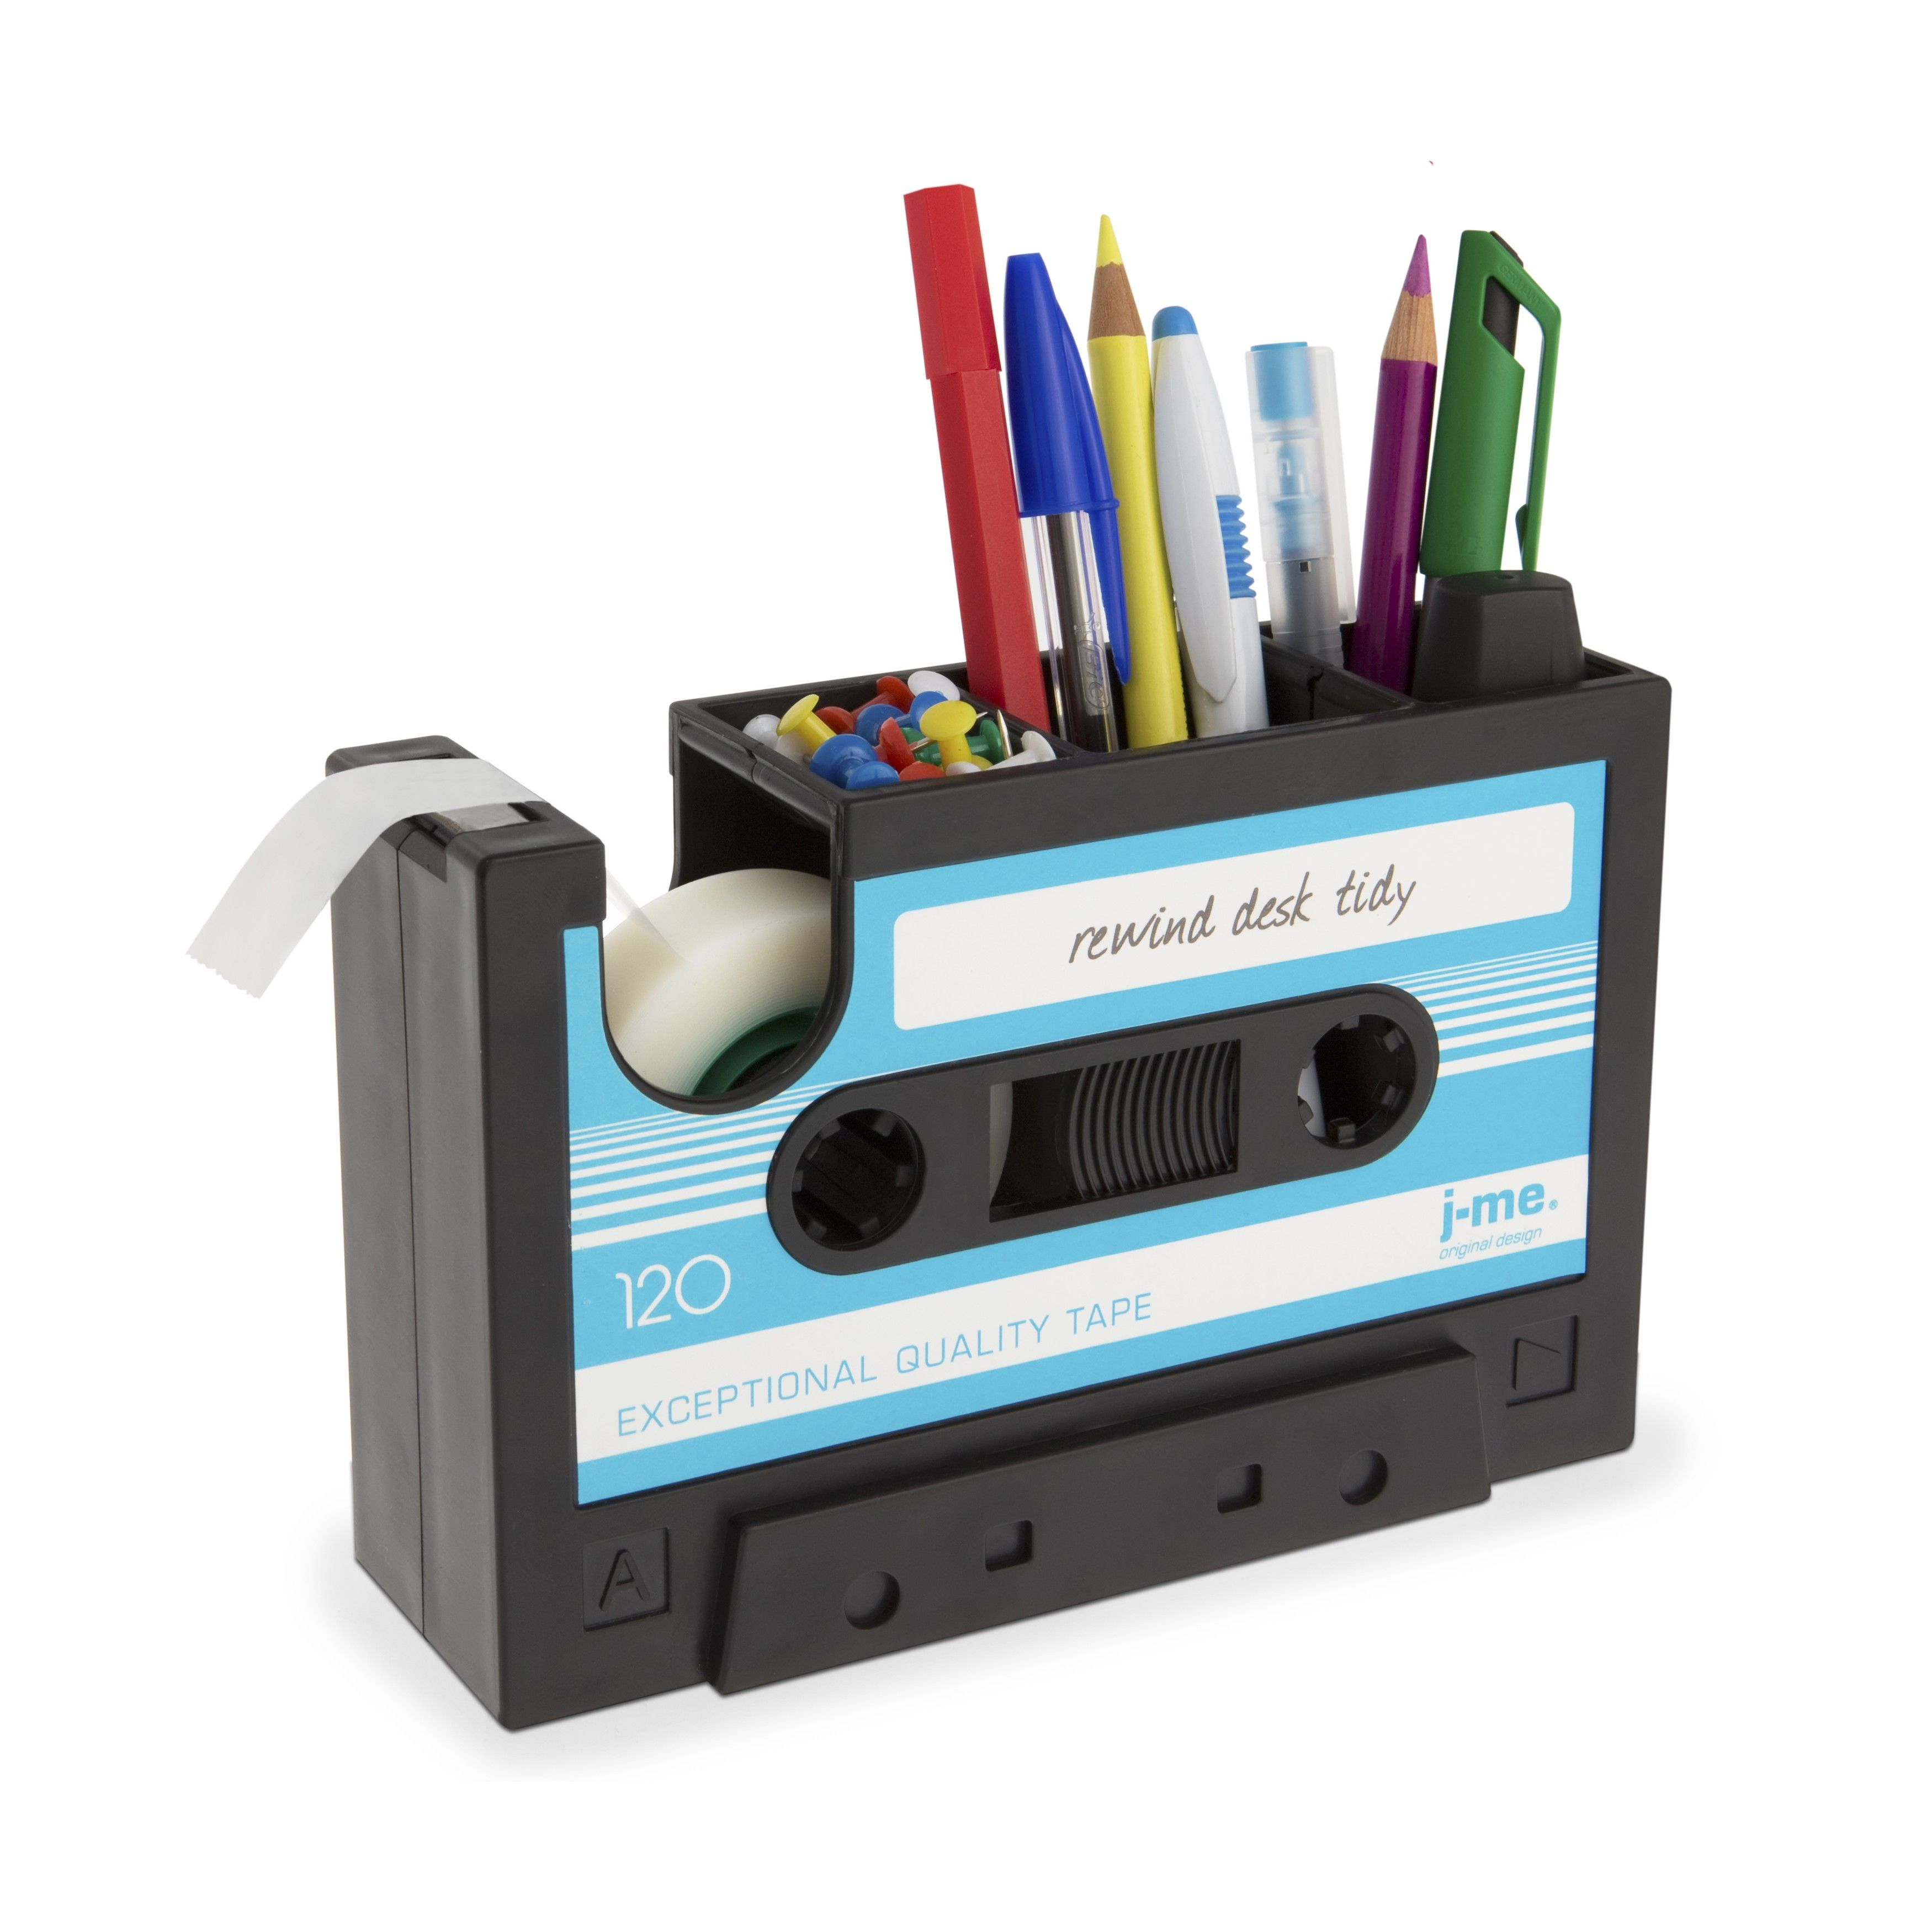 cool things for an office. What A Groovy Idea For Storage On Your Desk! J-ME Rewind Desk Tidy Office Stationery Organiser Cassette Tape Dispenser Cool Things An